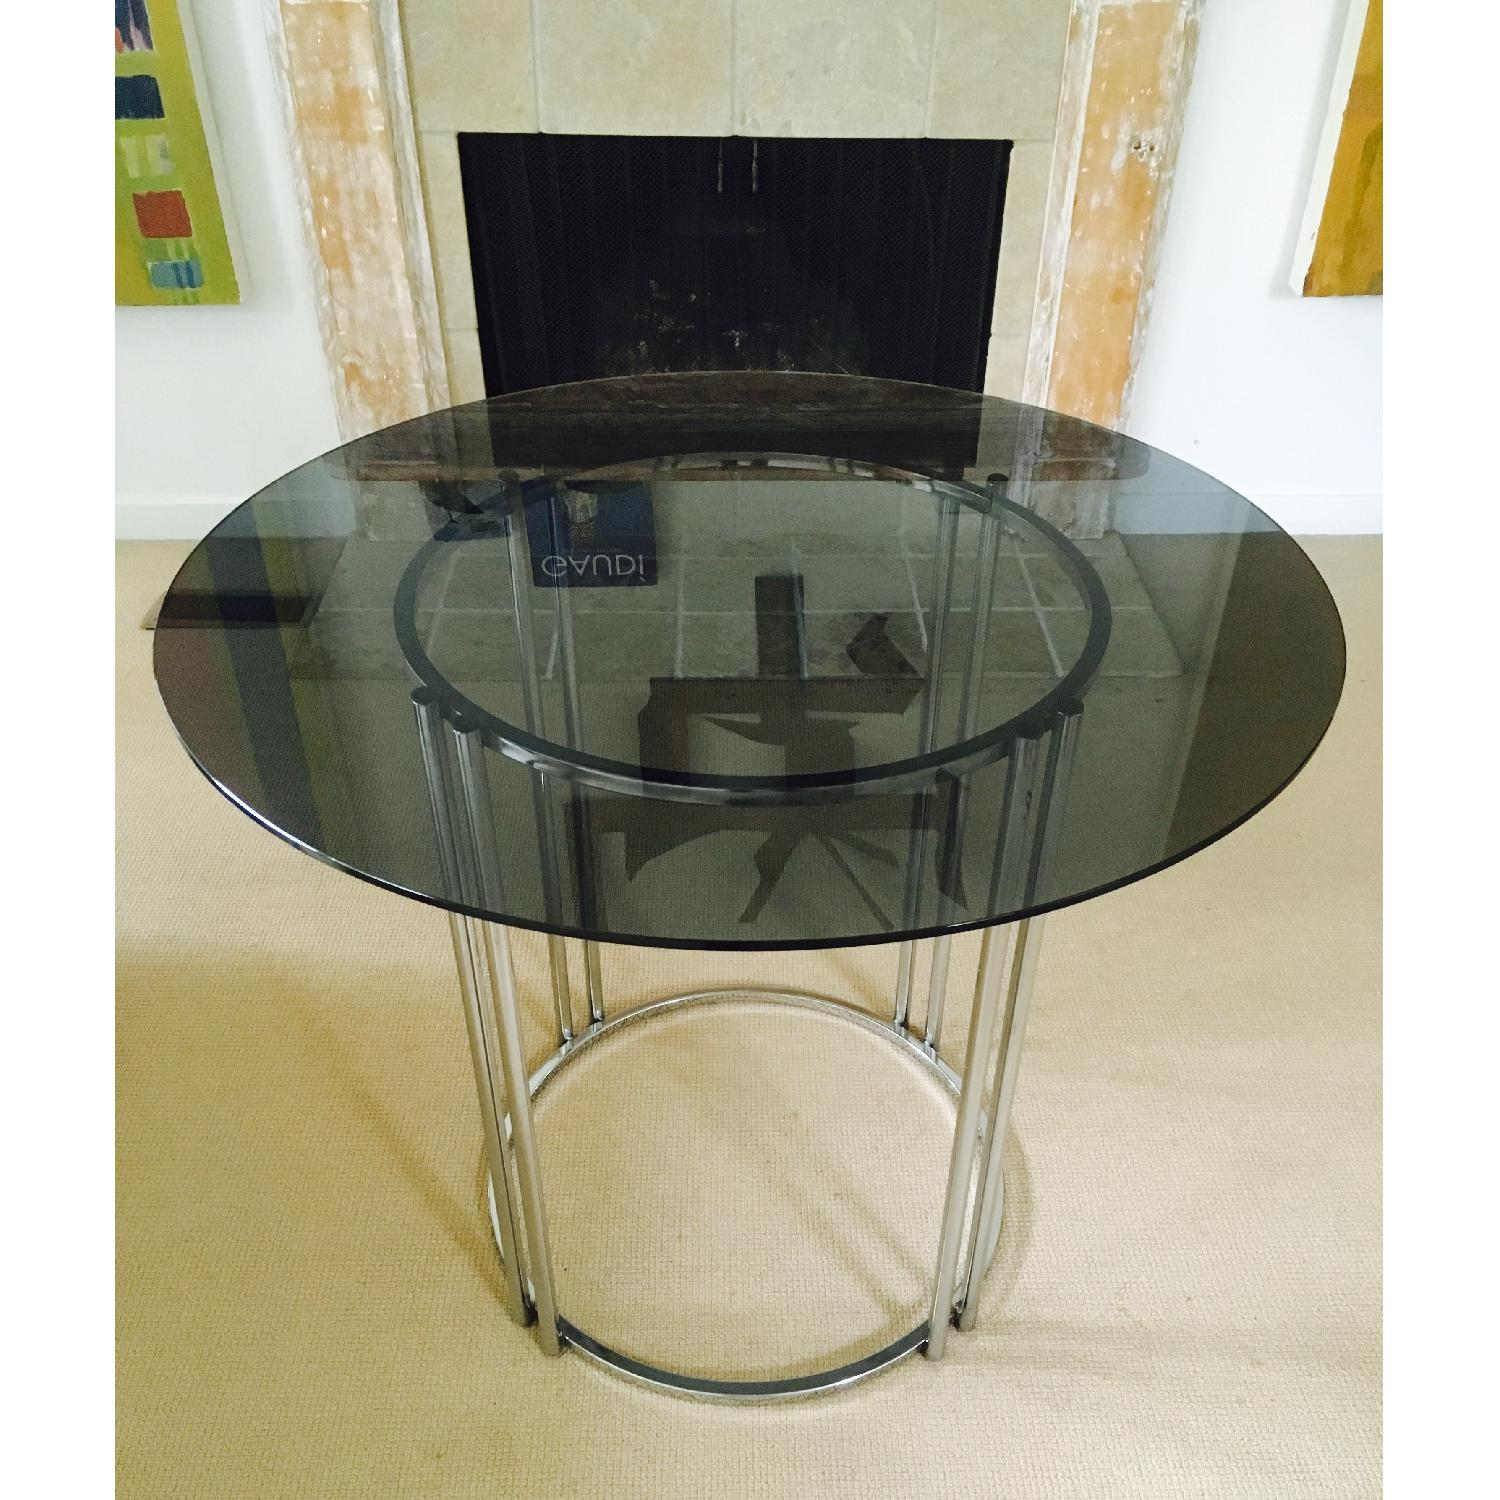 Vintage Chrome & Smoked Glass Dining/Occasional Table - image-2